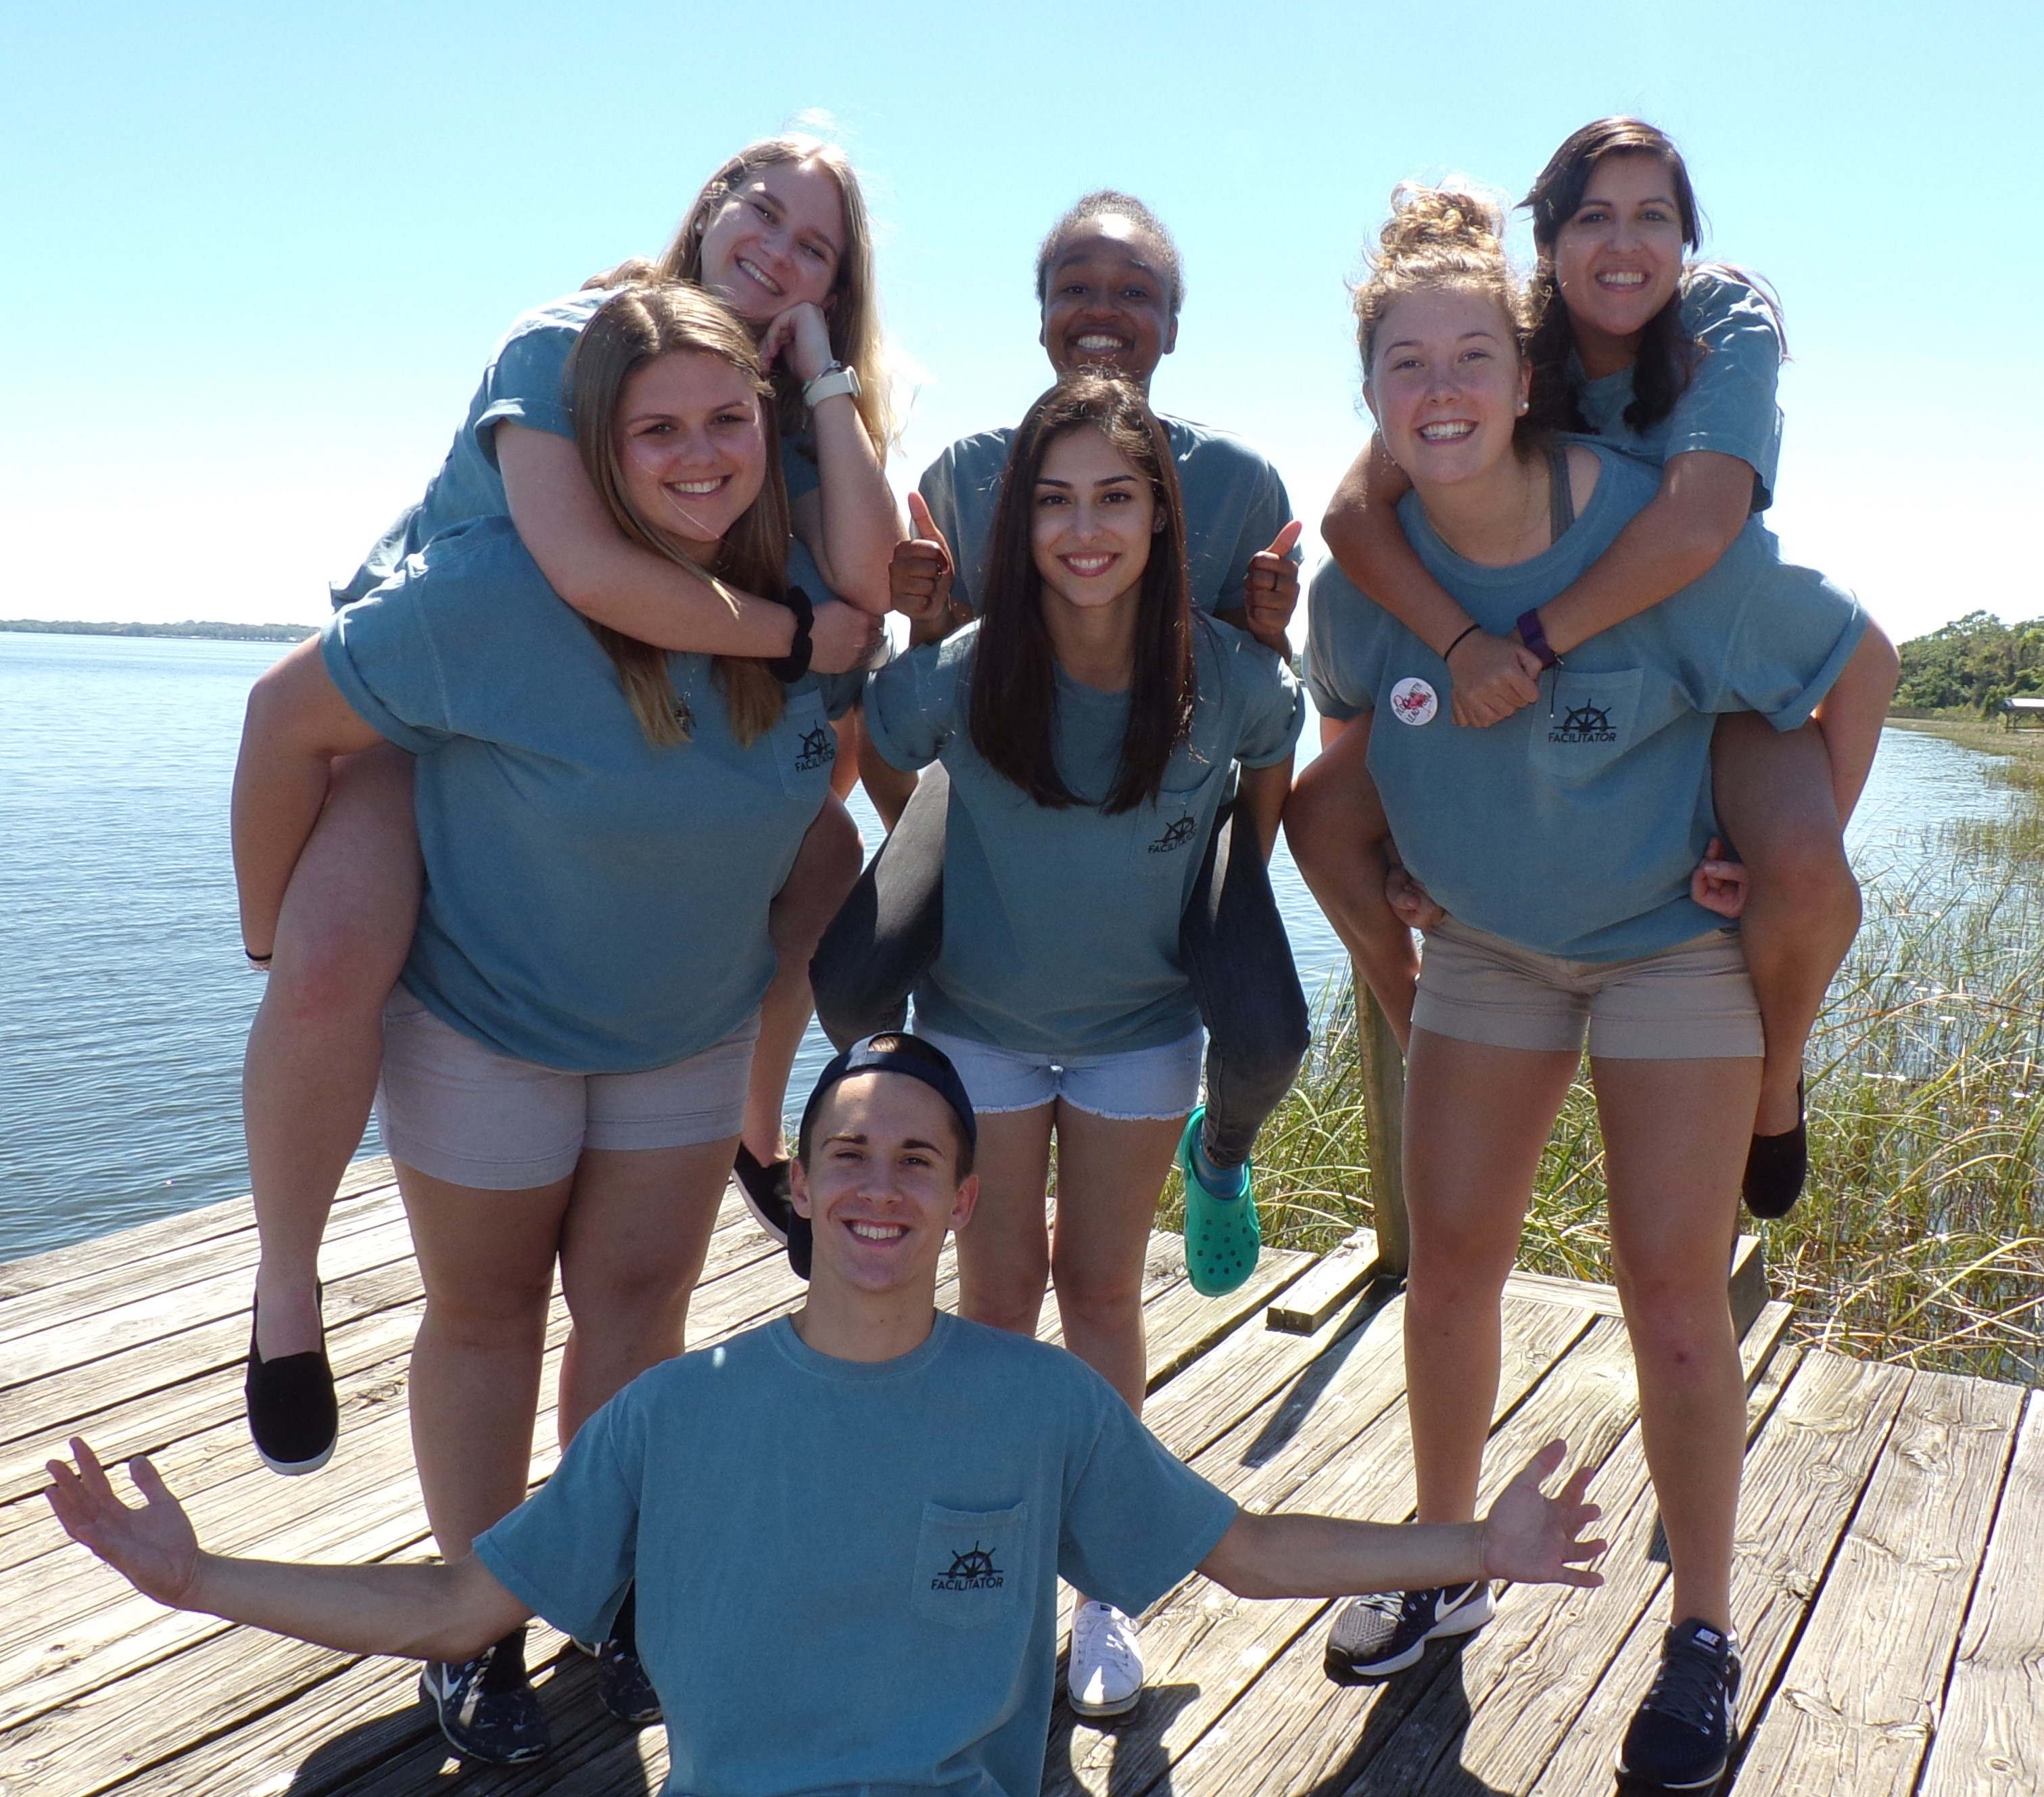 Seven students wearing blue shirts on a dock. A male student is sitting with his arms up. Three female students are on the backs of the other three female students. There is a large lake behind them.